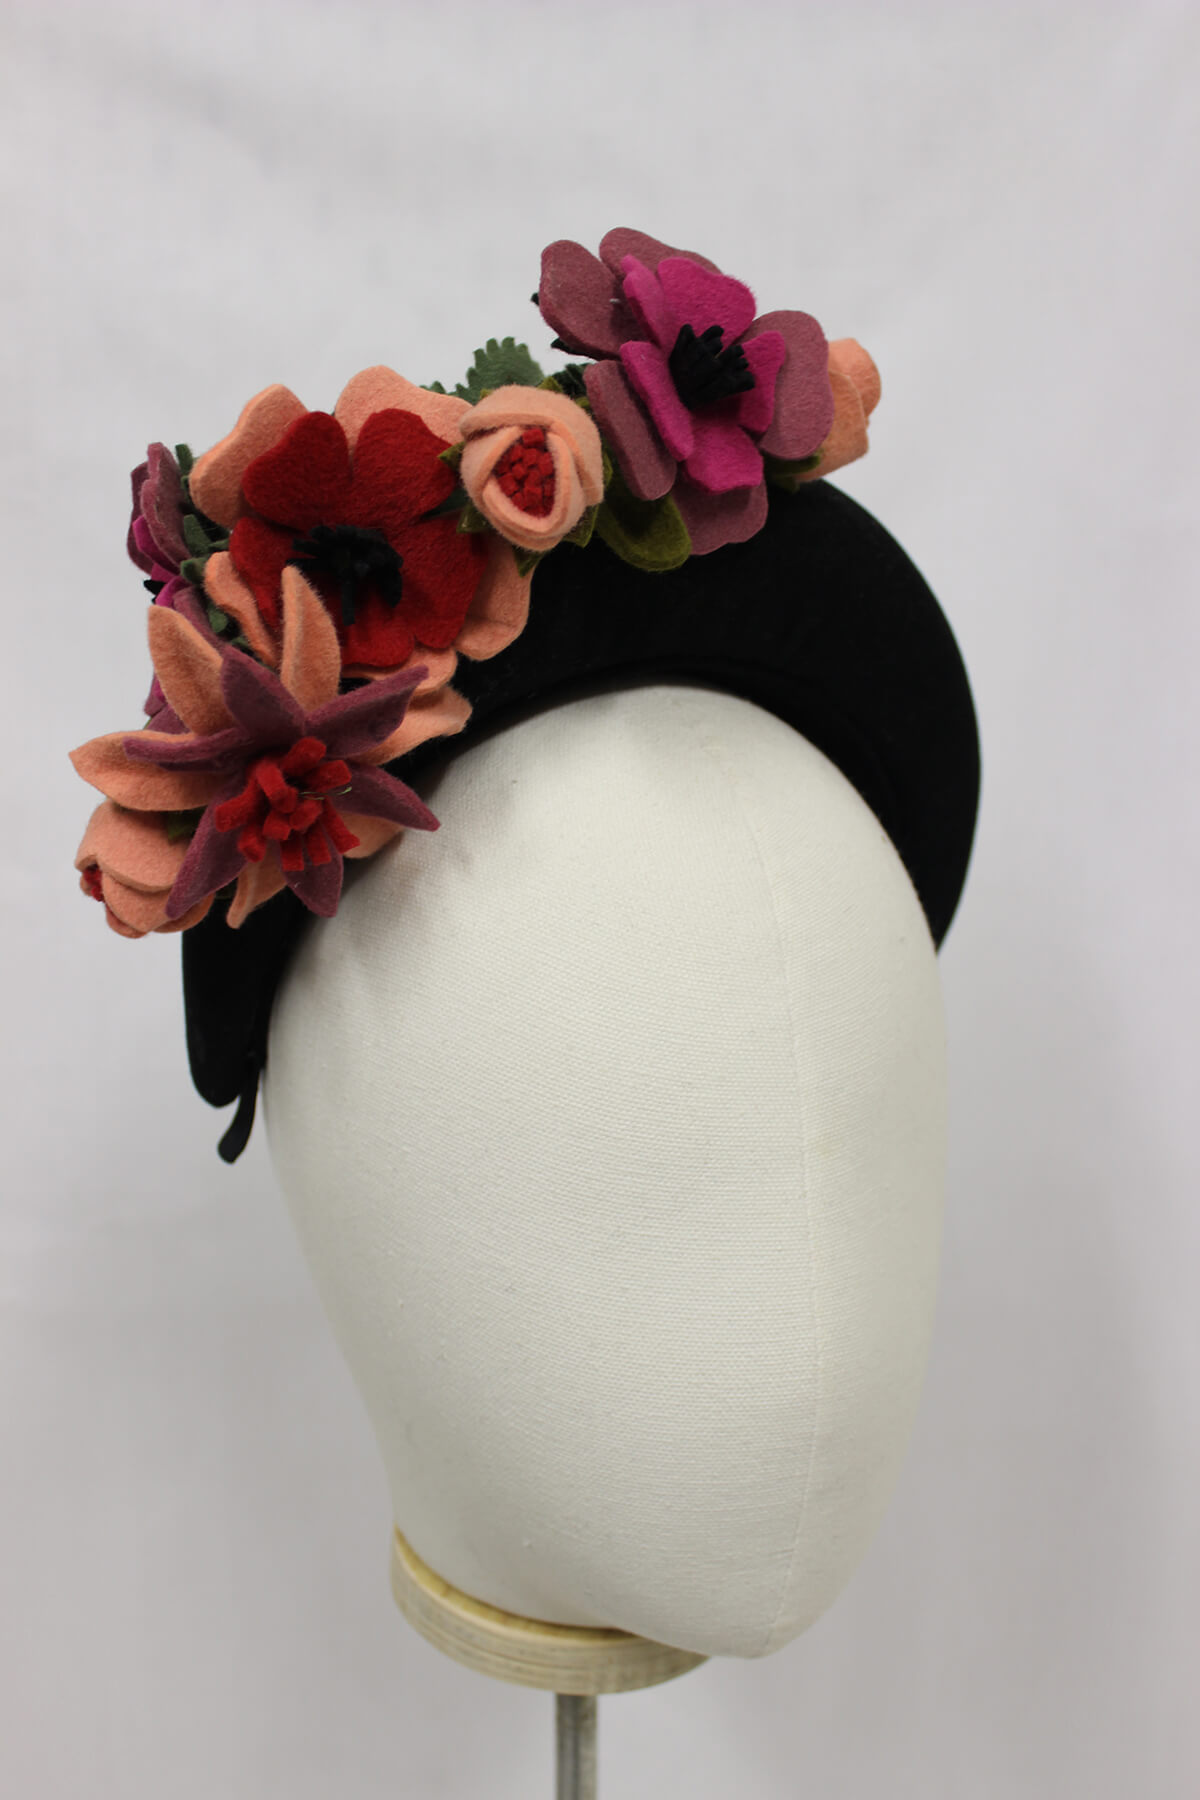 Felt flower hairband millinery available to buy.